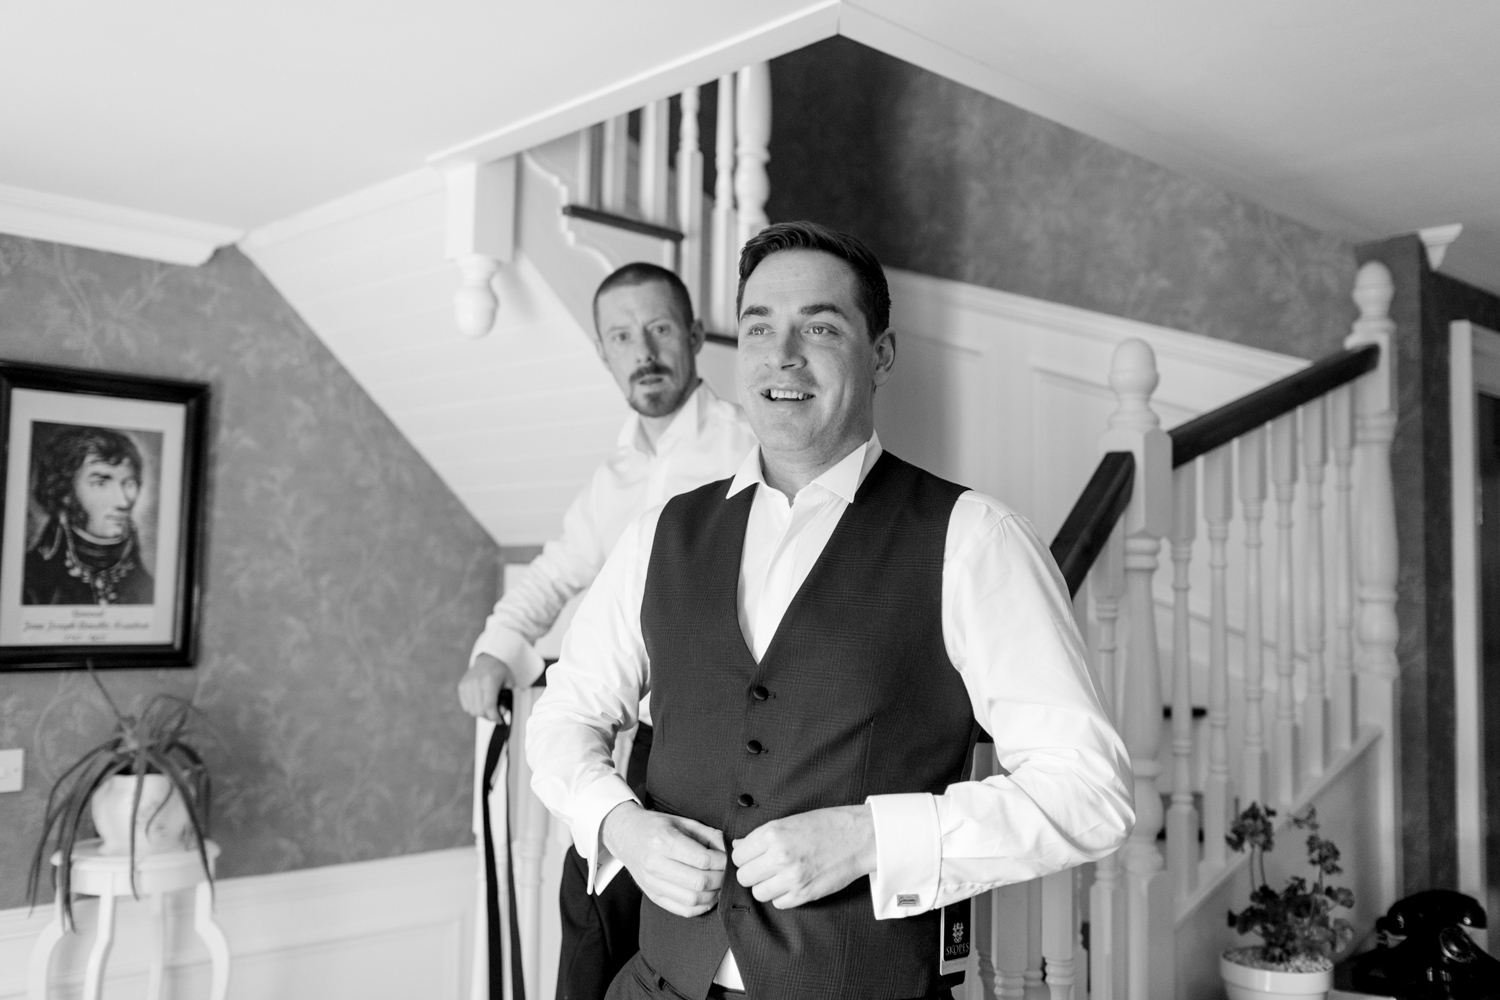 groom on the day of the wedding buttoning a vest for his black tie outfit